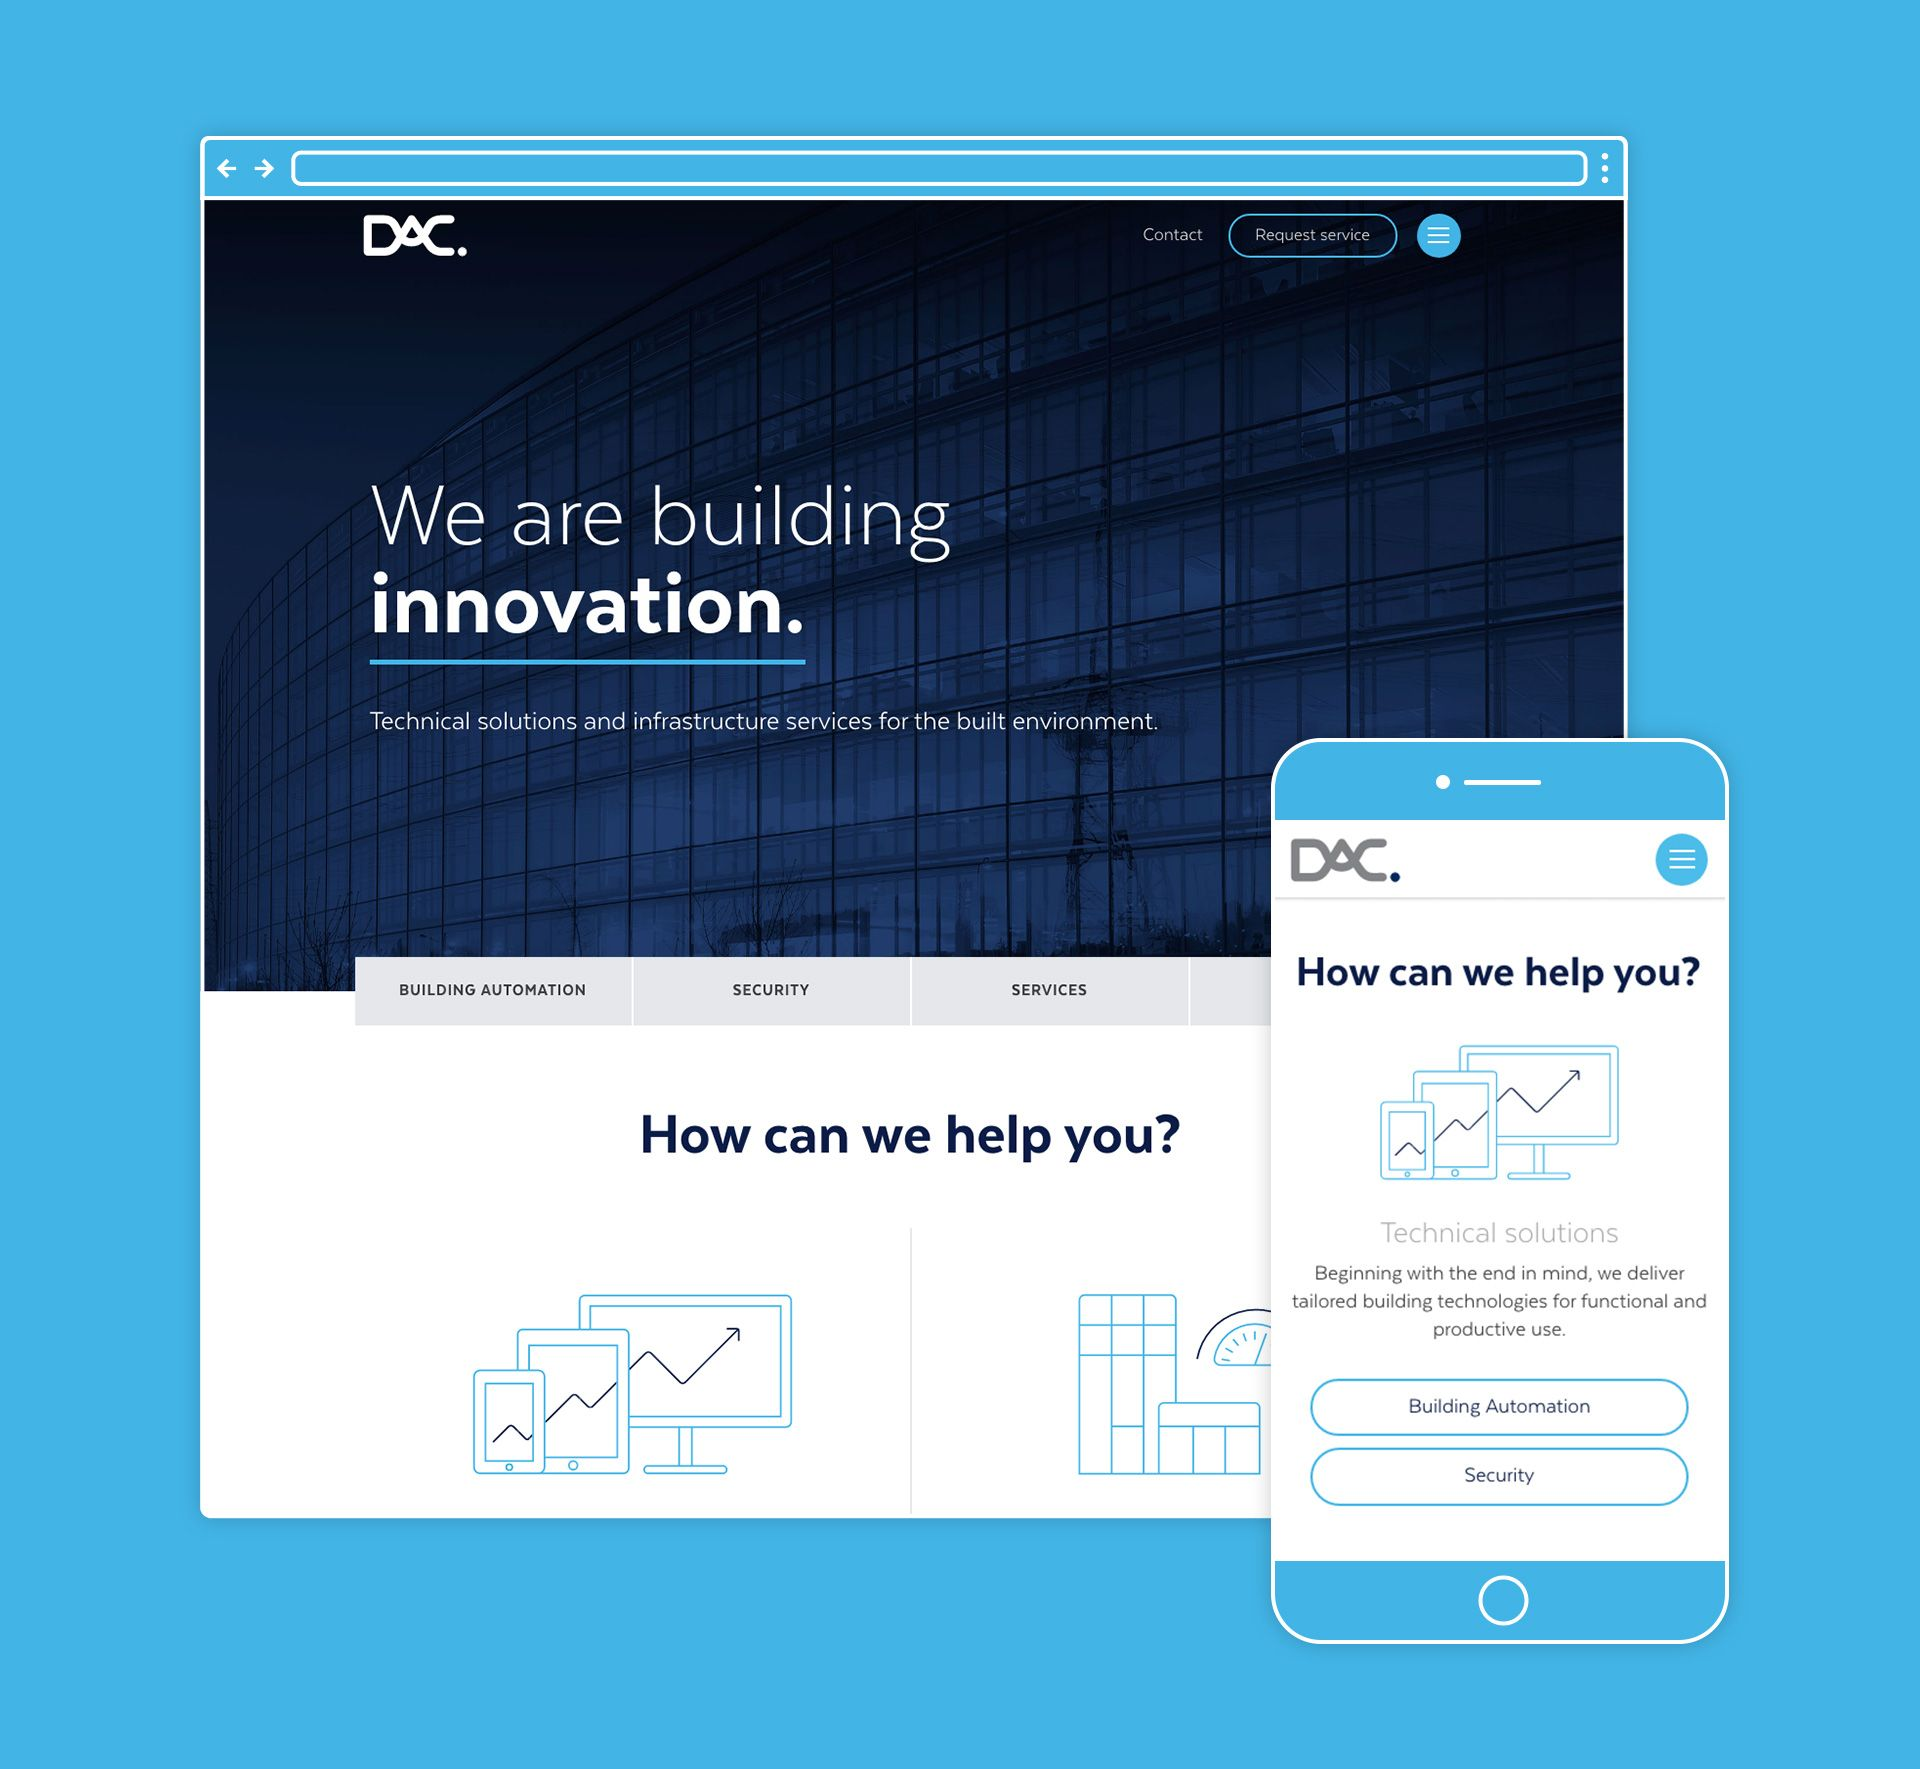 DAC website design